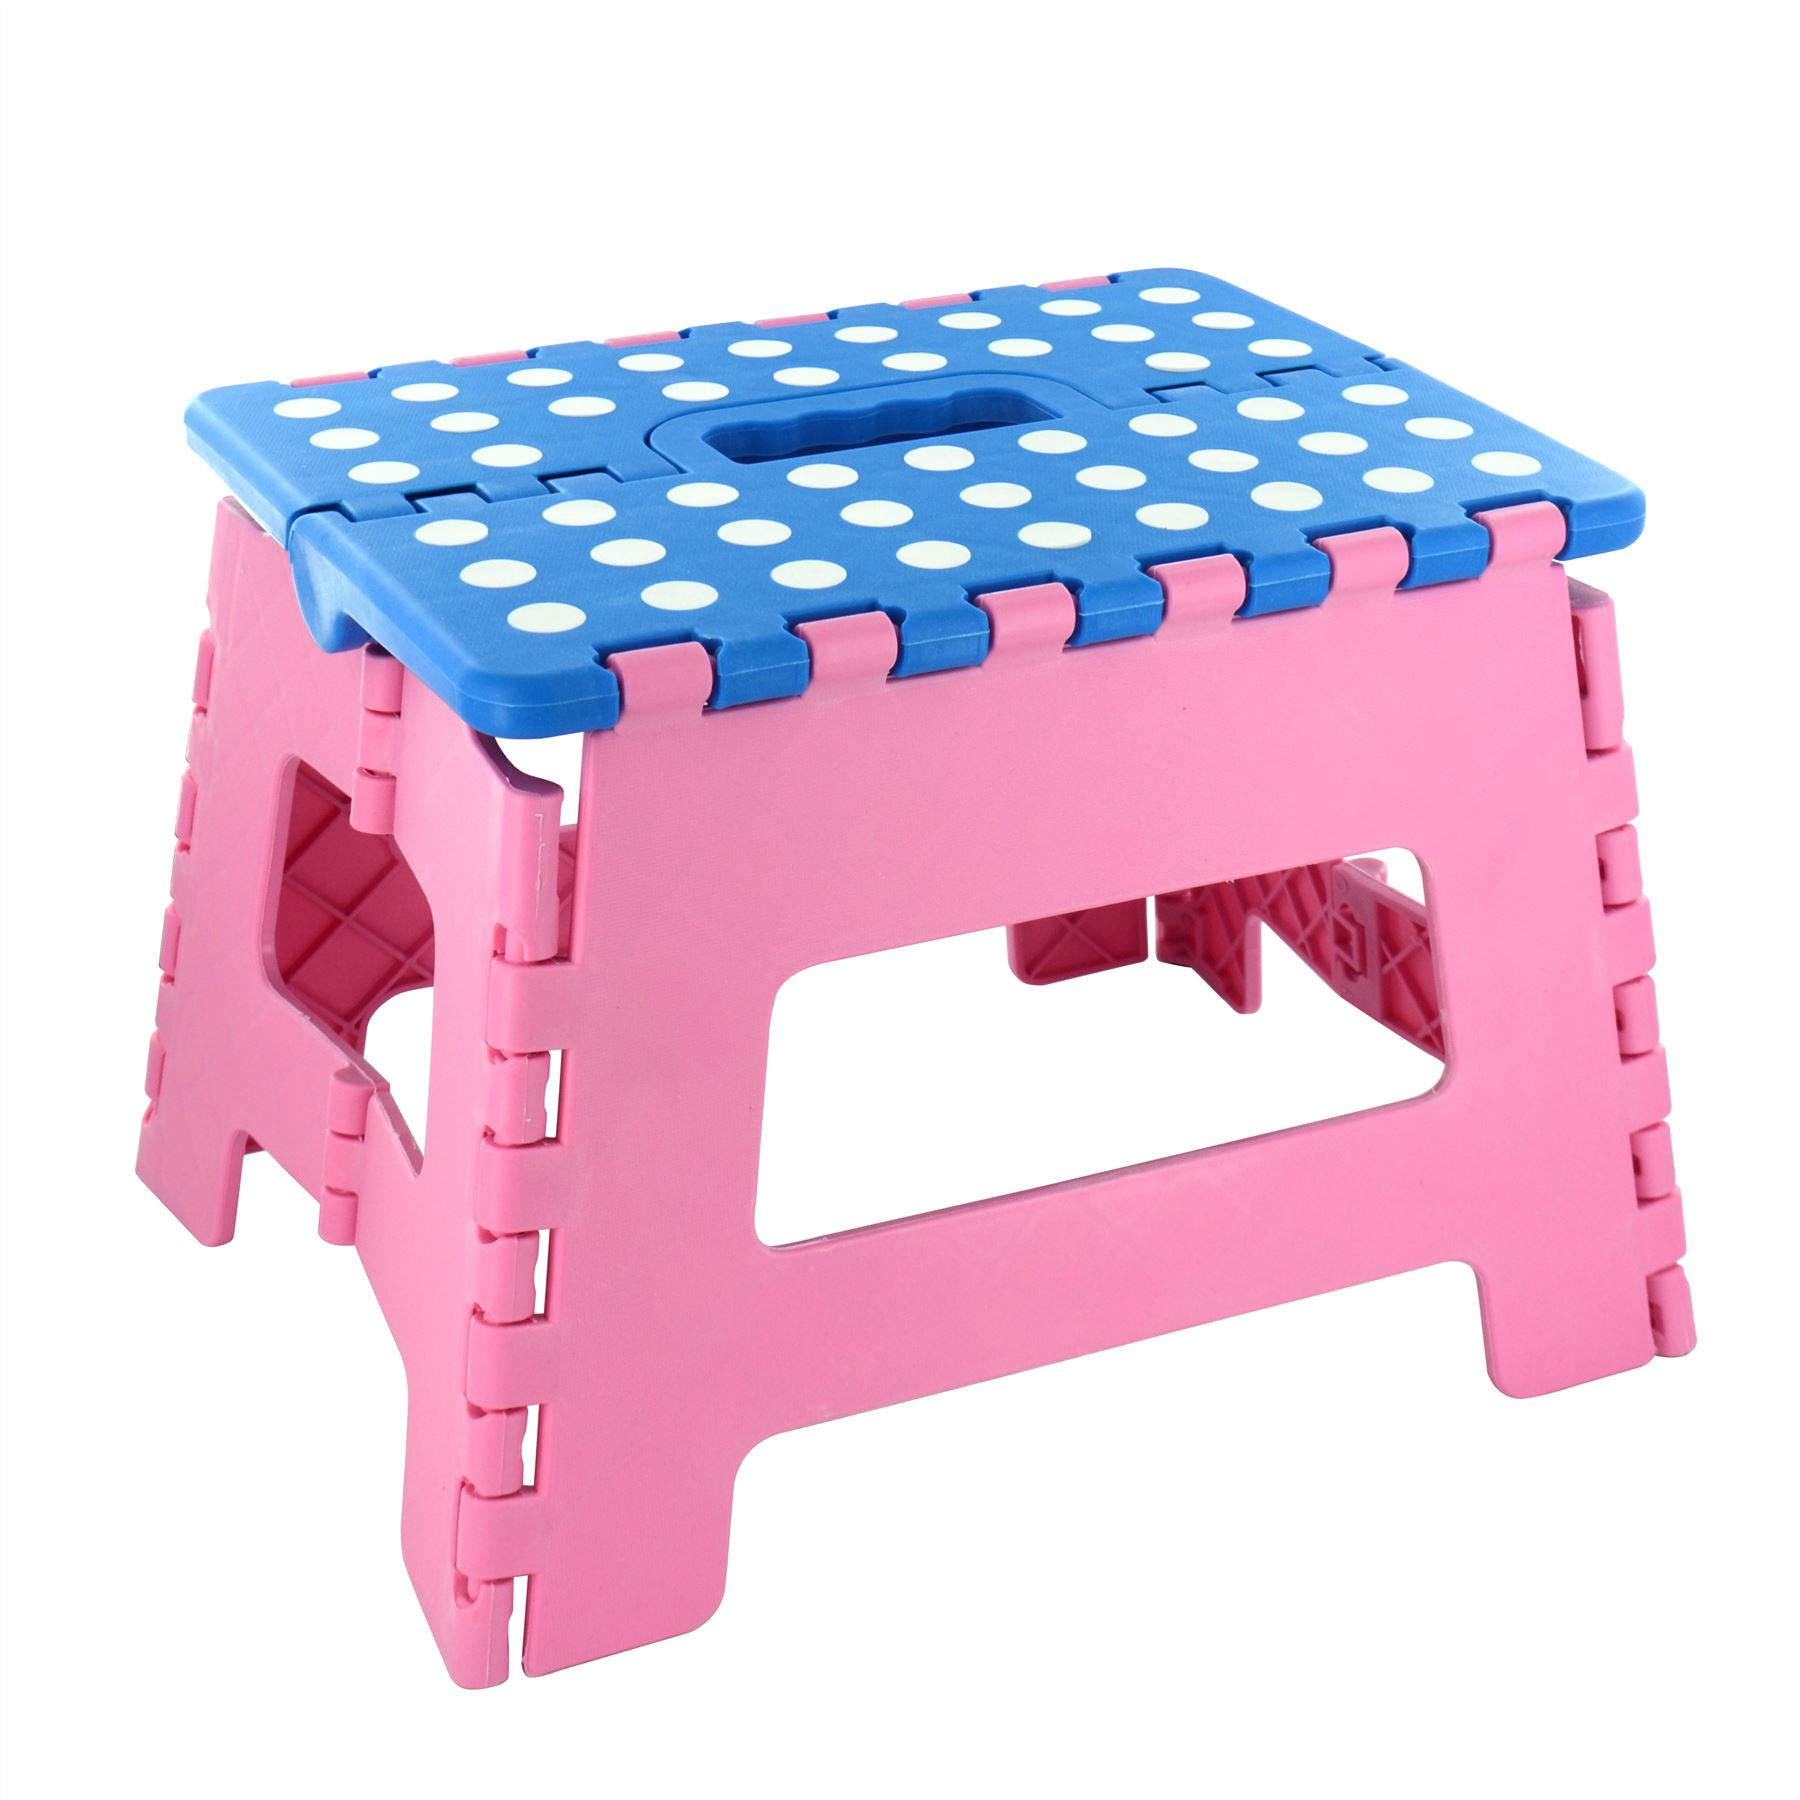 Plastic Multi Purpose Home Kitchen Folding Step Stool Foldable Easy Storage Ebay